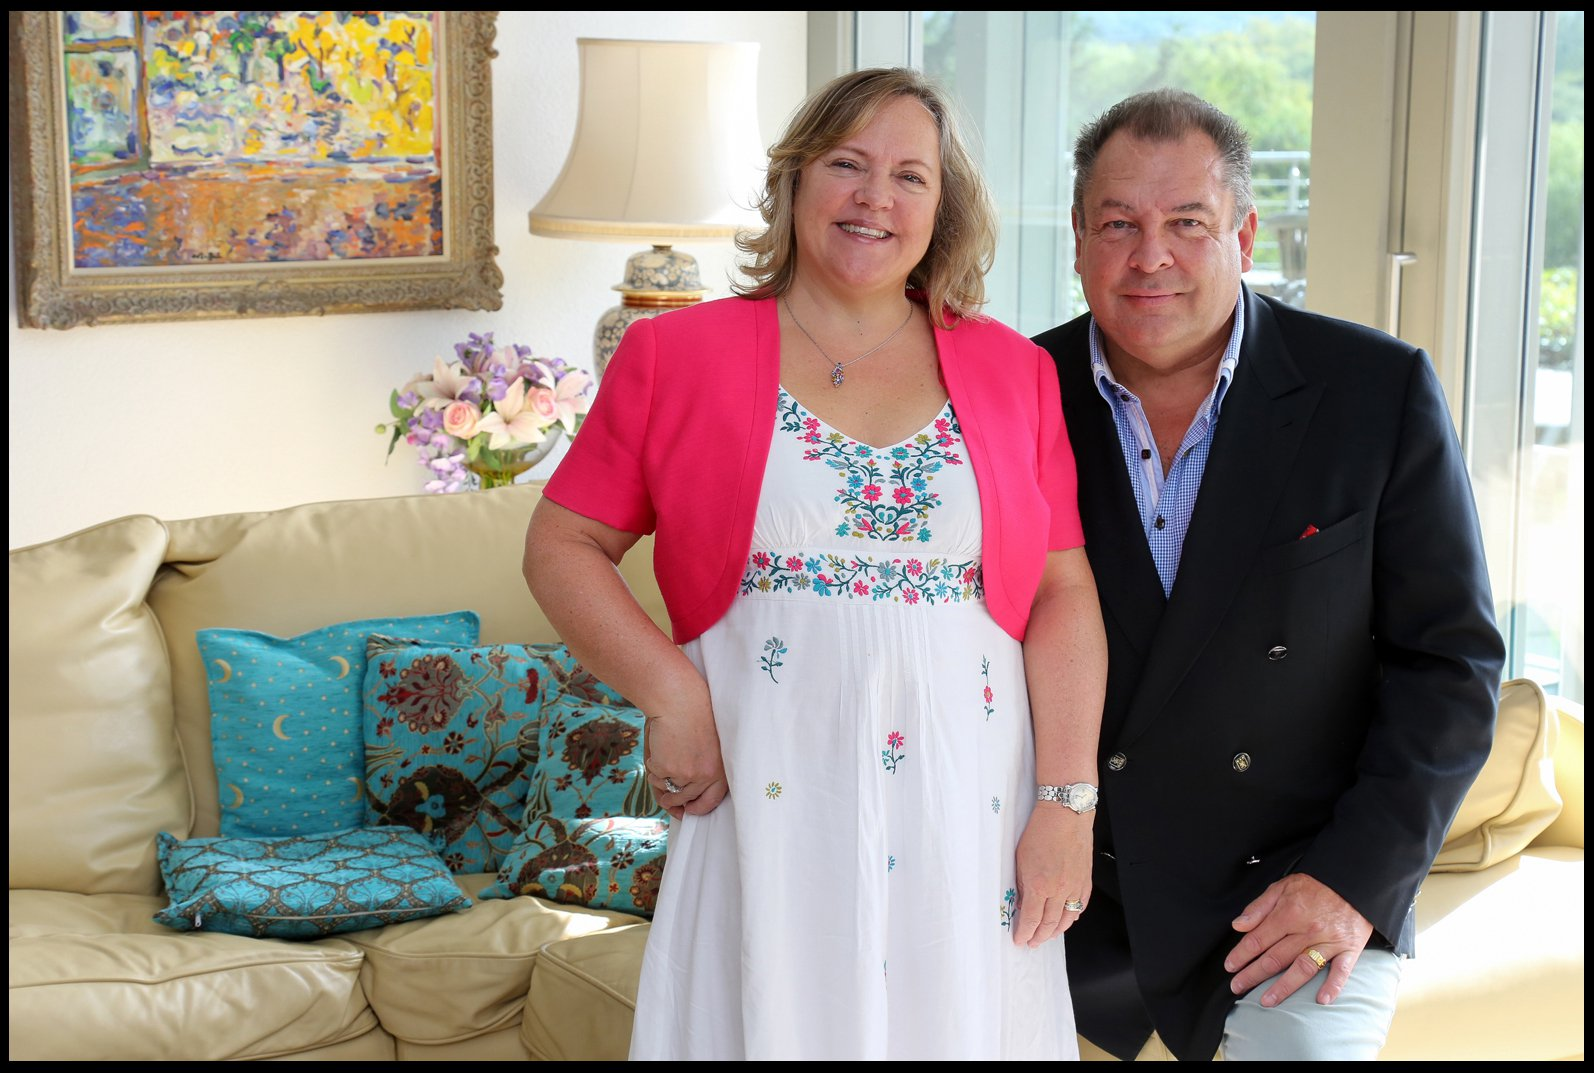 BNPS.co.uk (01202 558833) Pic: DeepSouthMedia/BNPS A couple who are raffling their stunning ?3m house at ?25 a pop have thrown in a runner's up prize ? a brand new Aston Martin worth ?160,000. Mark Beresford, a company managing director, and wife Sharon got fed up with sales of their six-bed riverside home falling through so they decided on the radical sales tactic. They will have to sell 120,000 tickets to reach the ?3m value of Avon Place near Ringwood, Hants. Now, to provide an extra incentive to enter the competition, they will take the runner-up to a showroom and get them to pick the Aston Martin DB11 V8 of their choice.